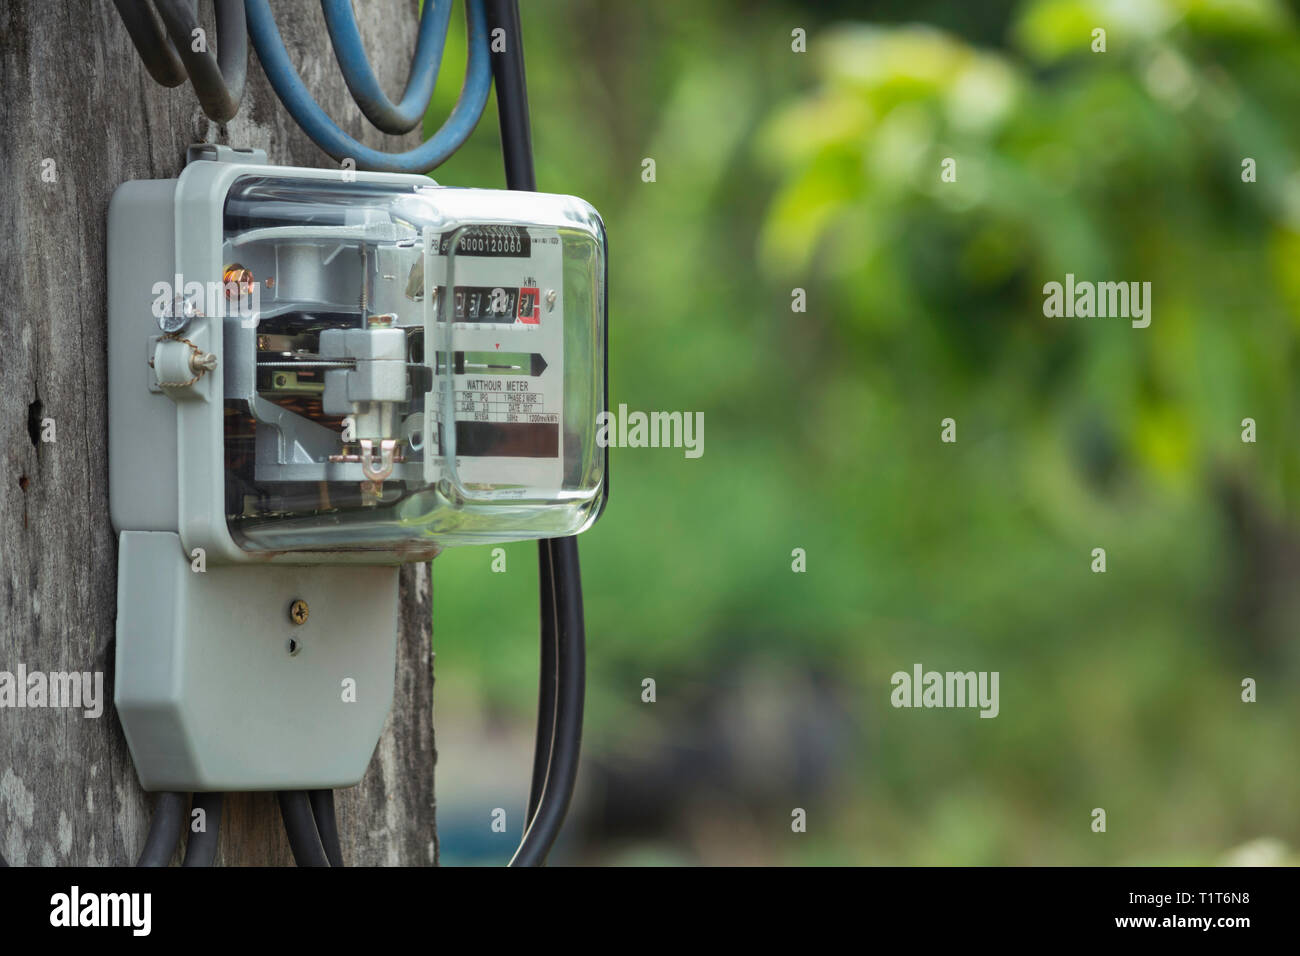 Electric power meter measuring power usage. Watt hour electric meter measurement tool with copy space. - Stock Image